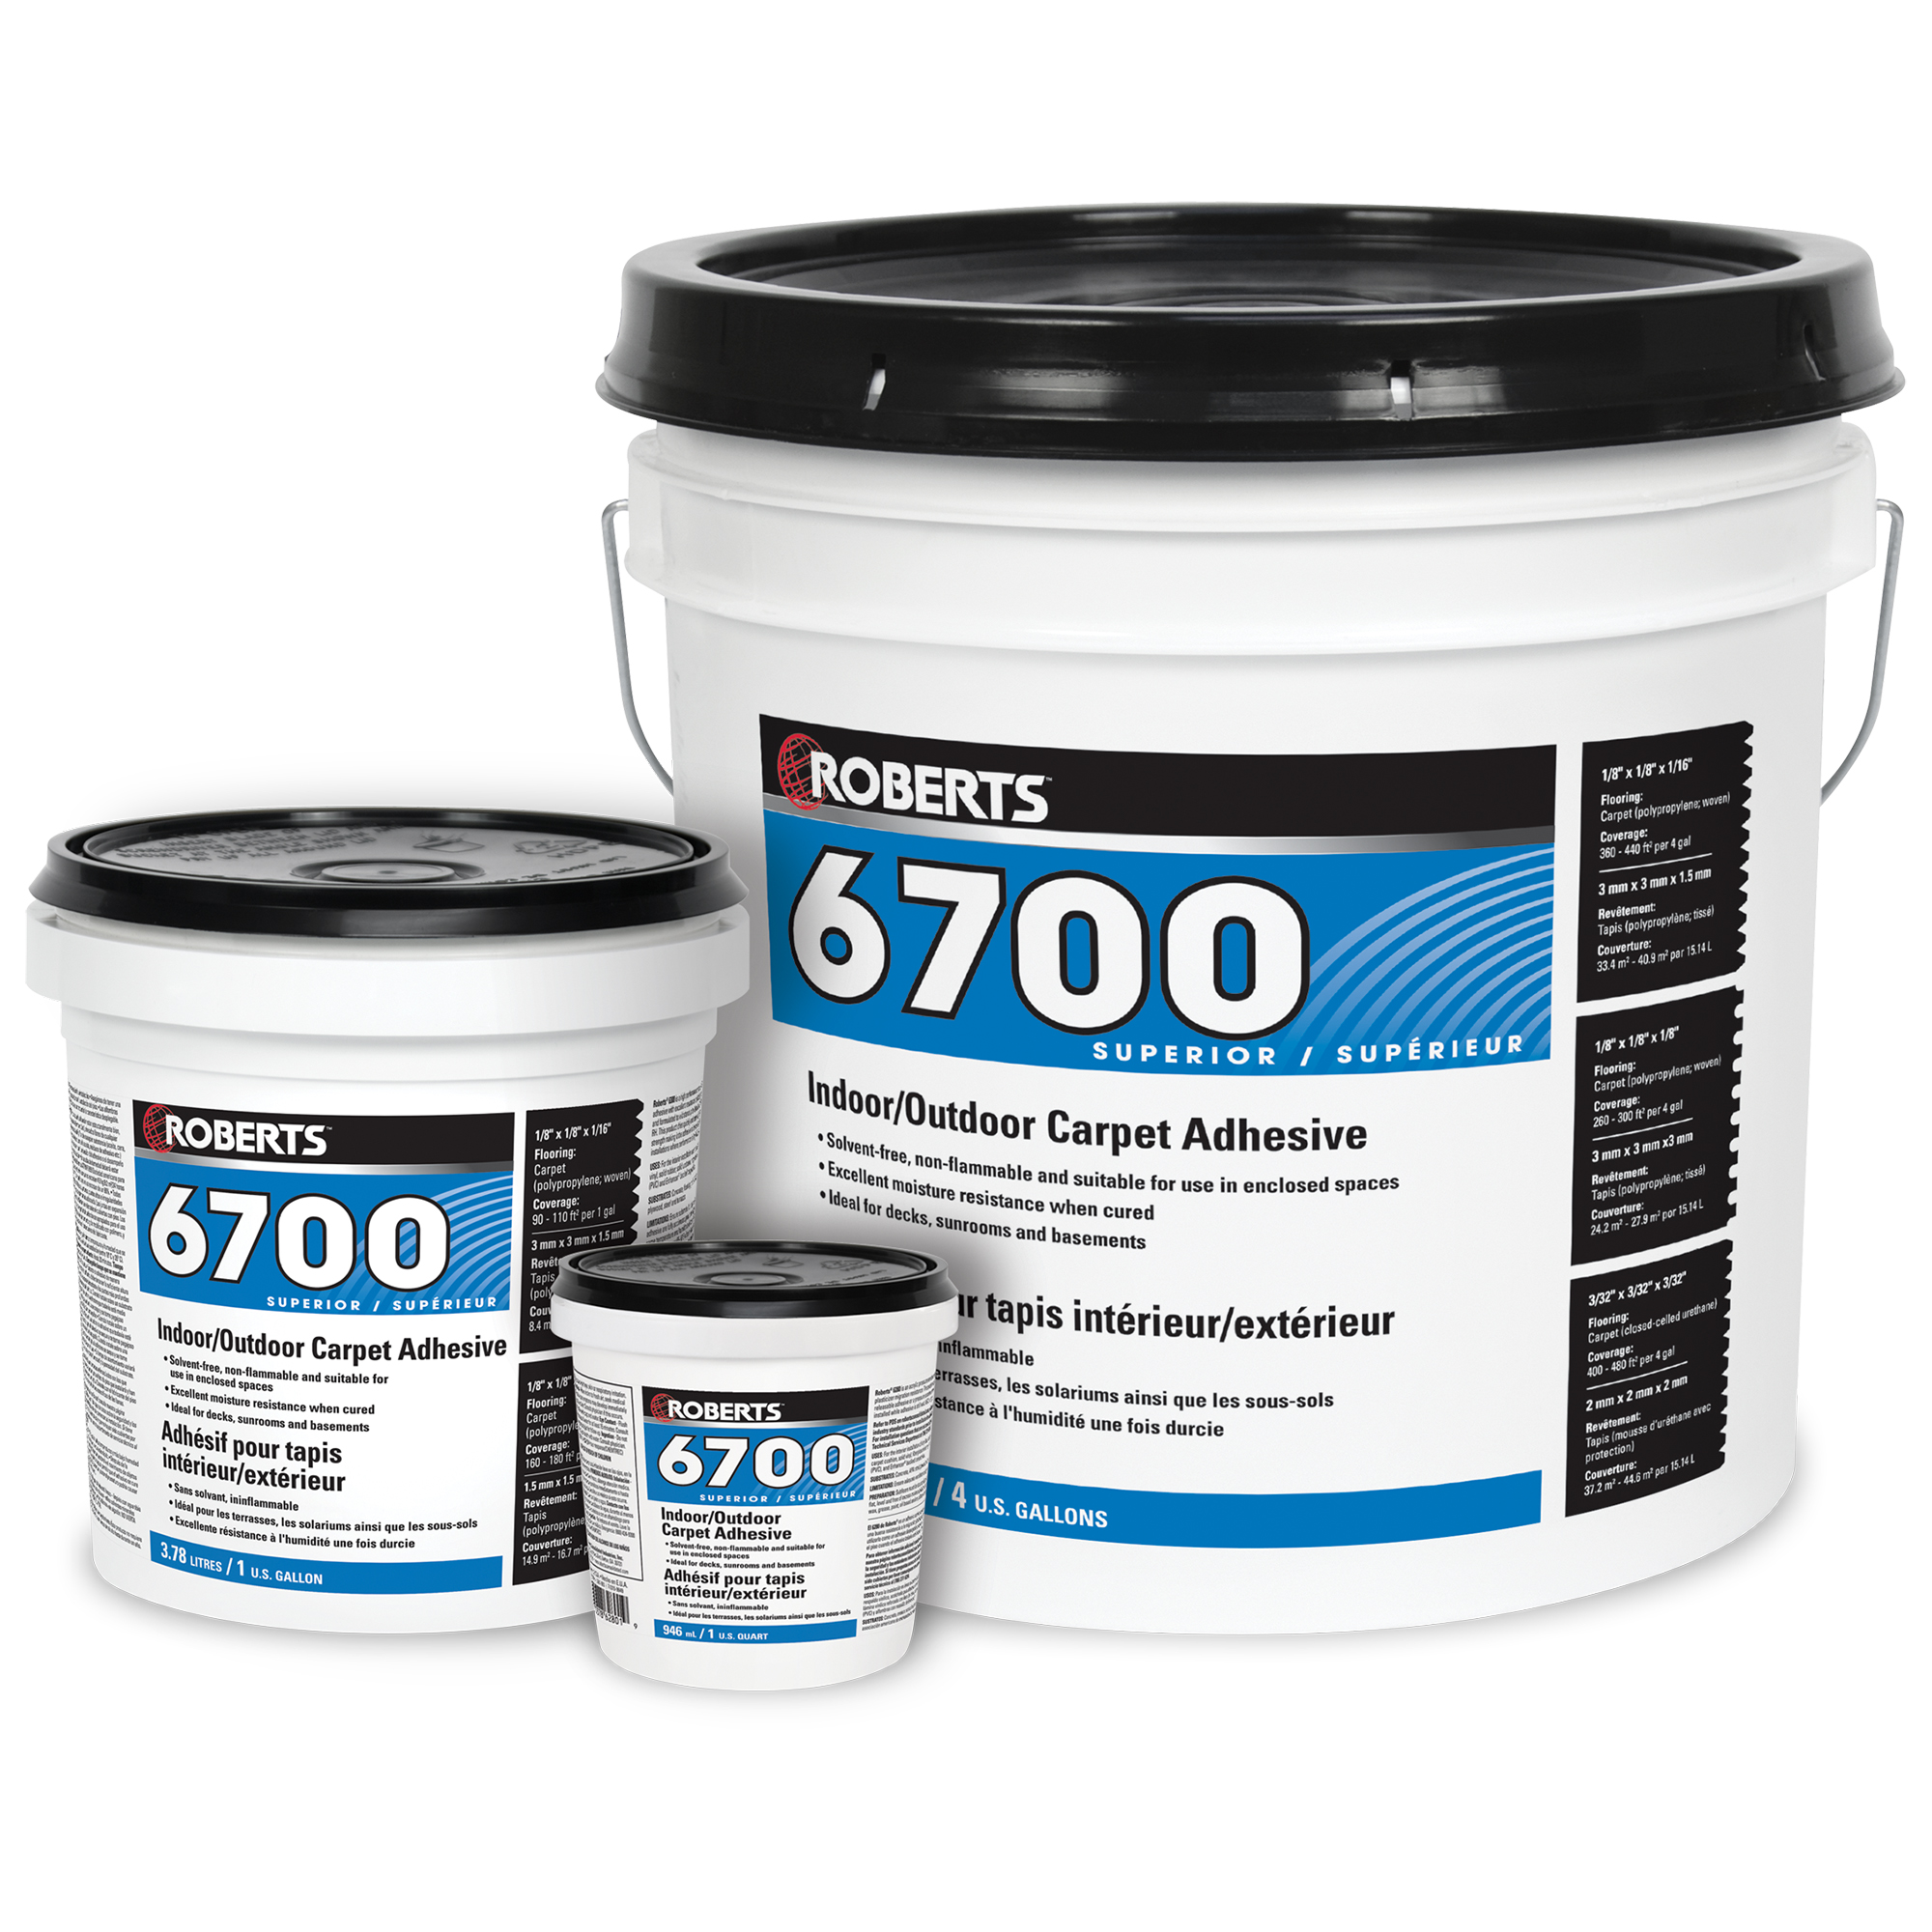 Indoor/Outdoor Carpet Adhesive